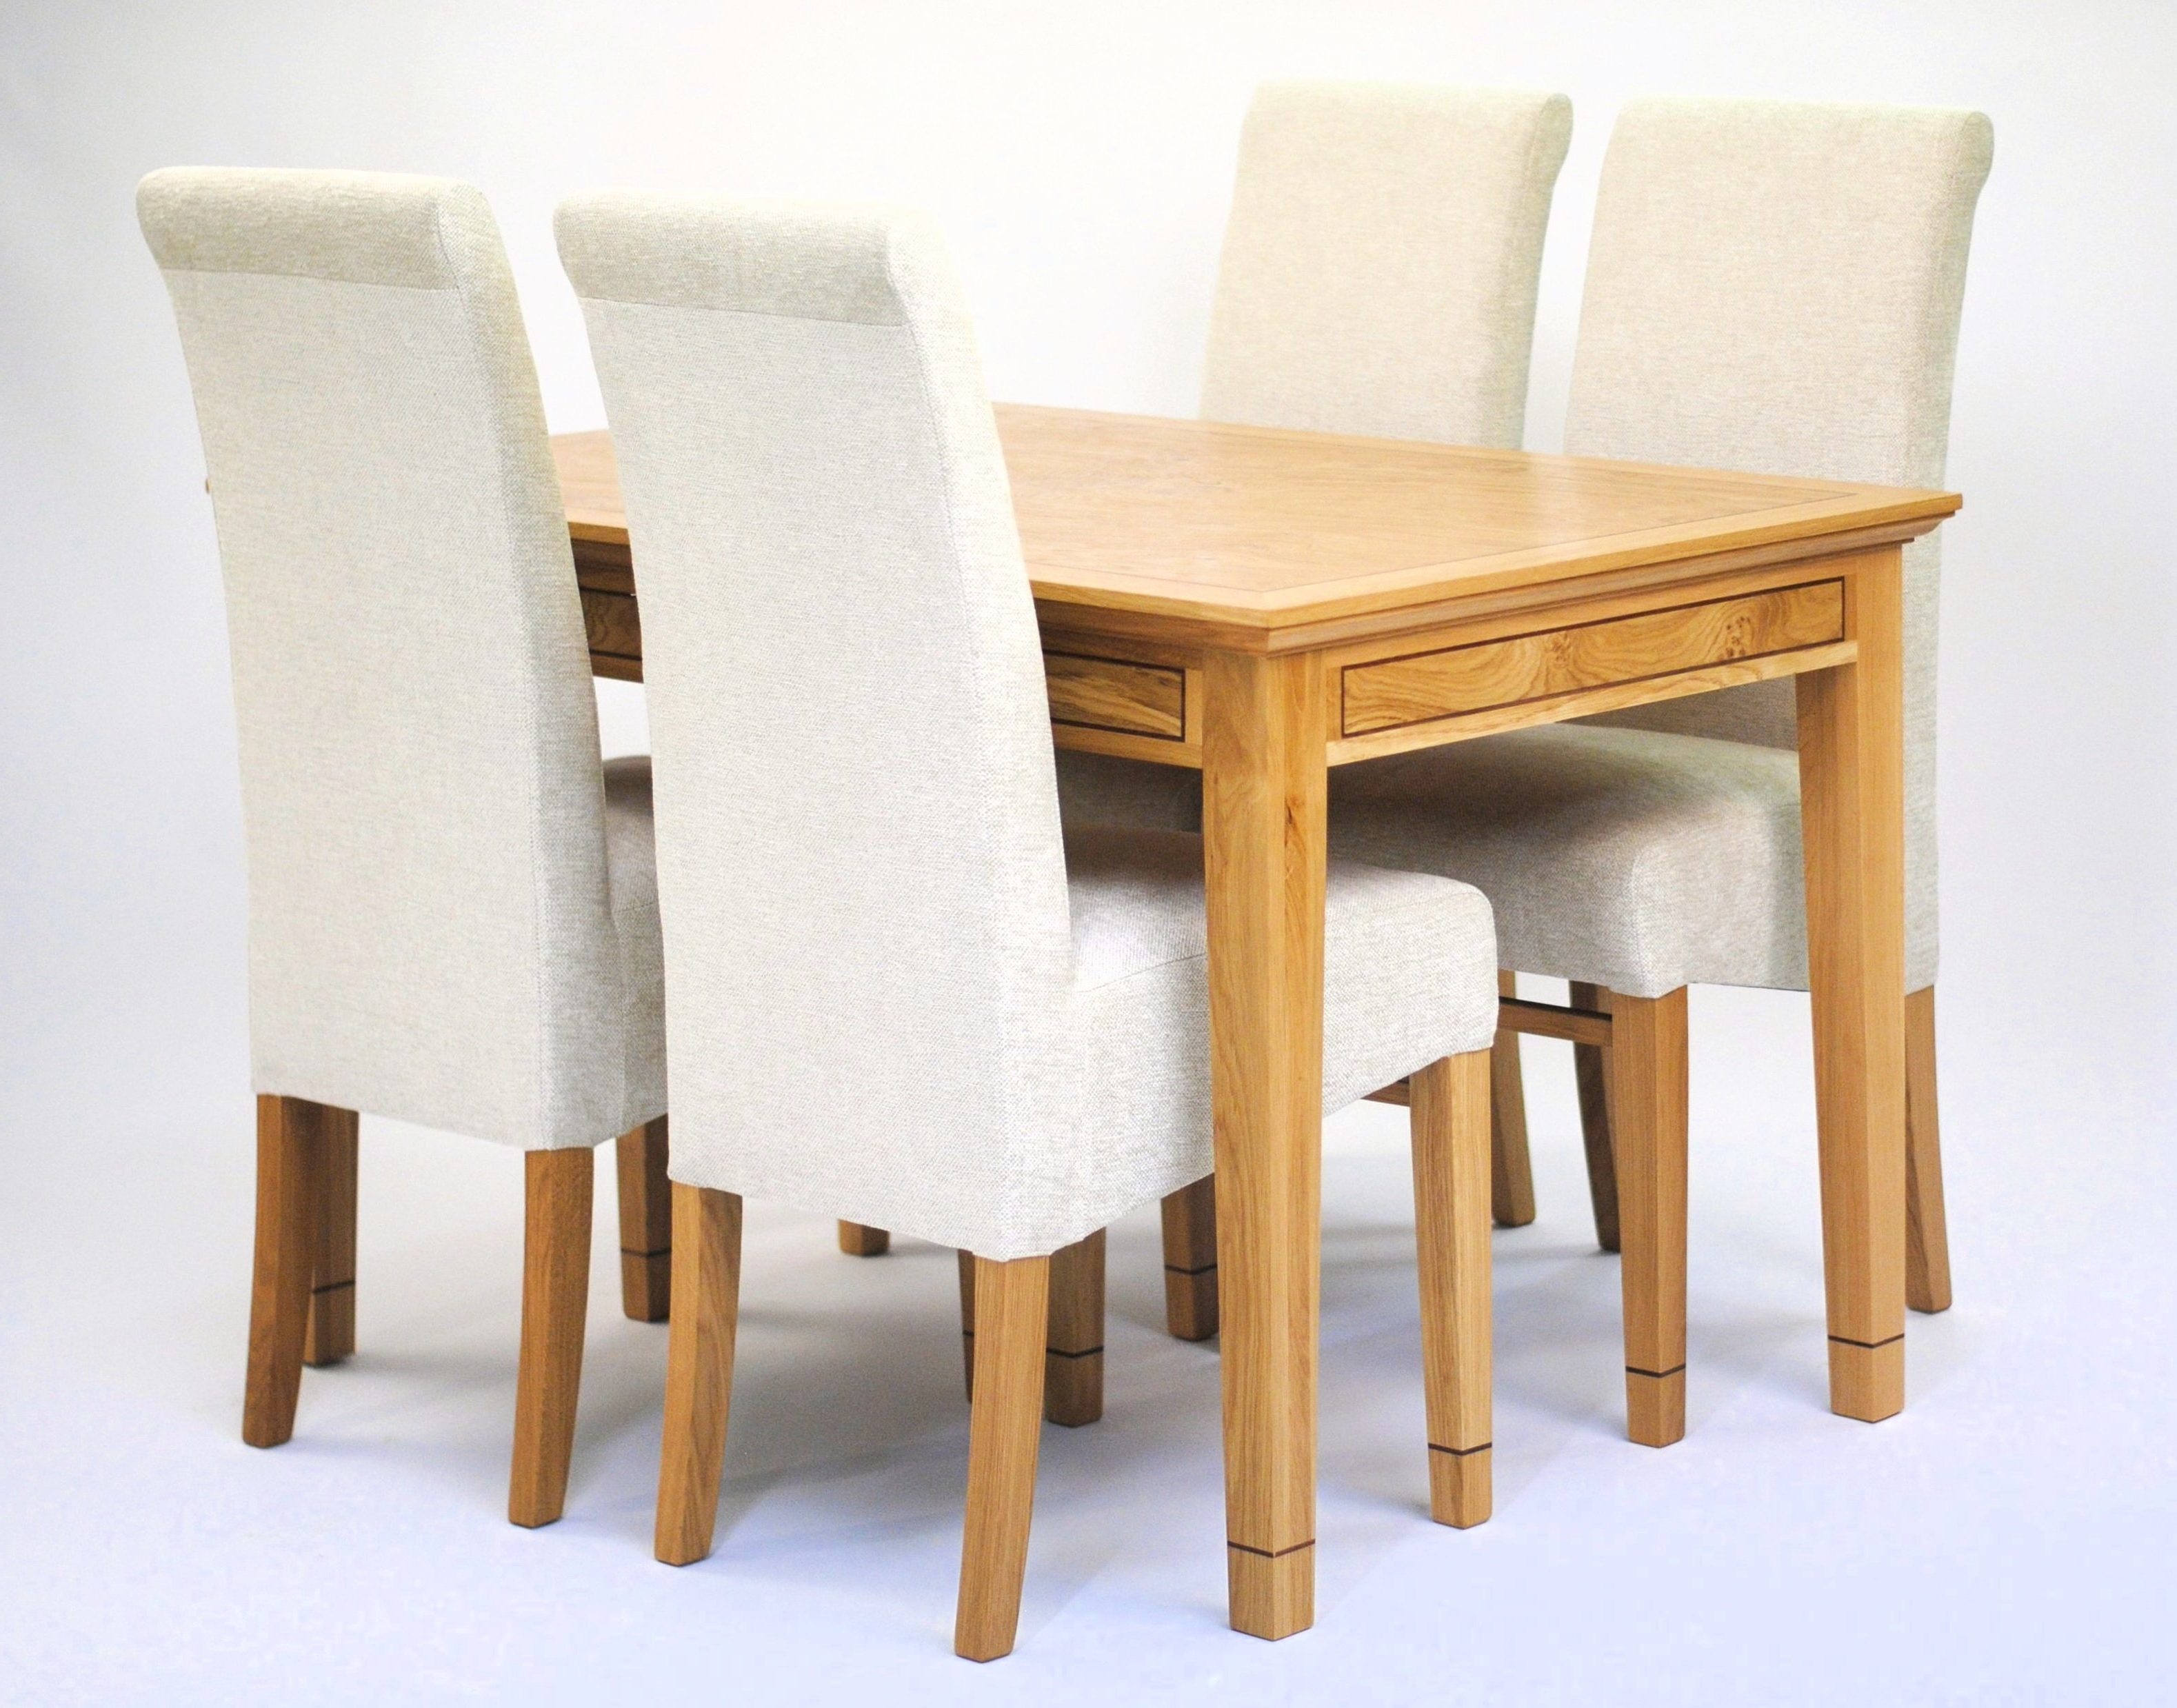 Small Dining Tables And Chairs With Well Known Dining Room Package Deal – Tanner Furniture Designs (View 21 of 25)